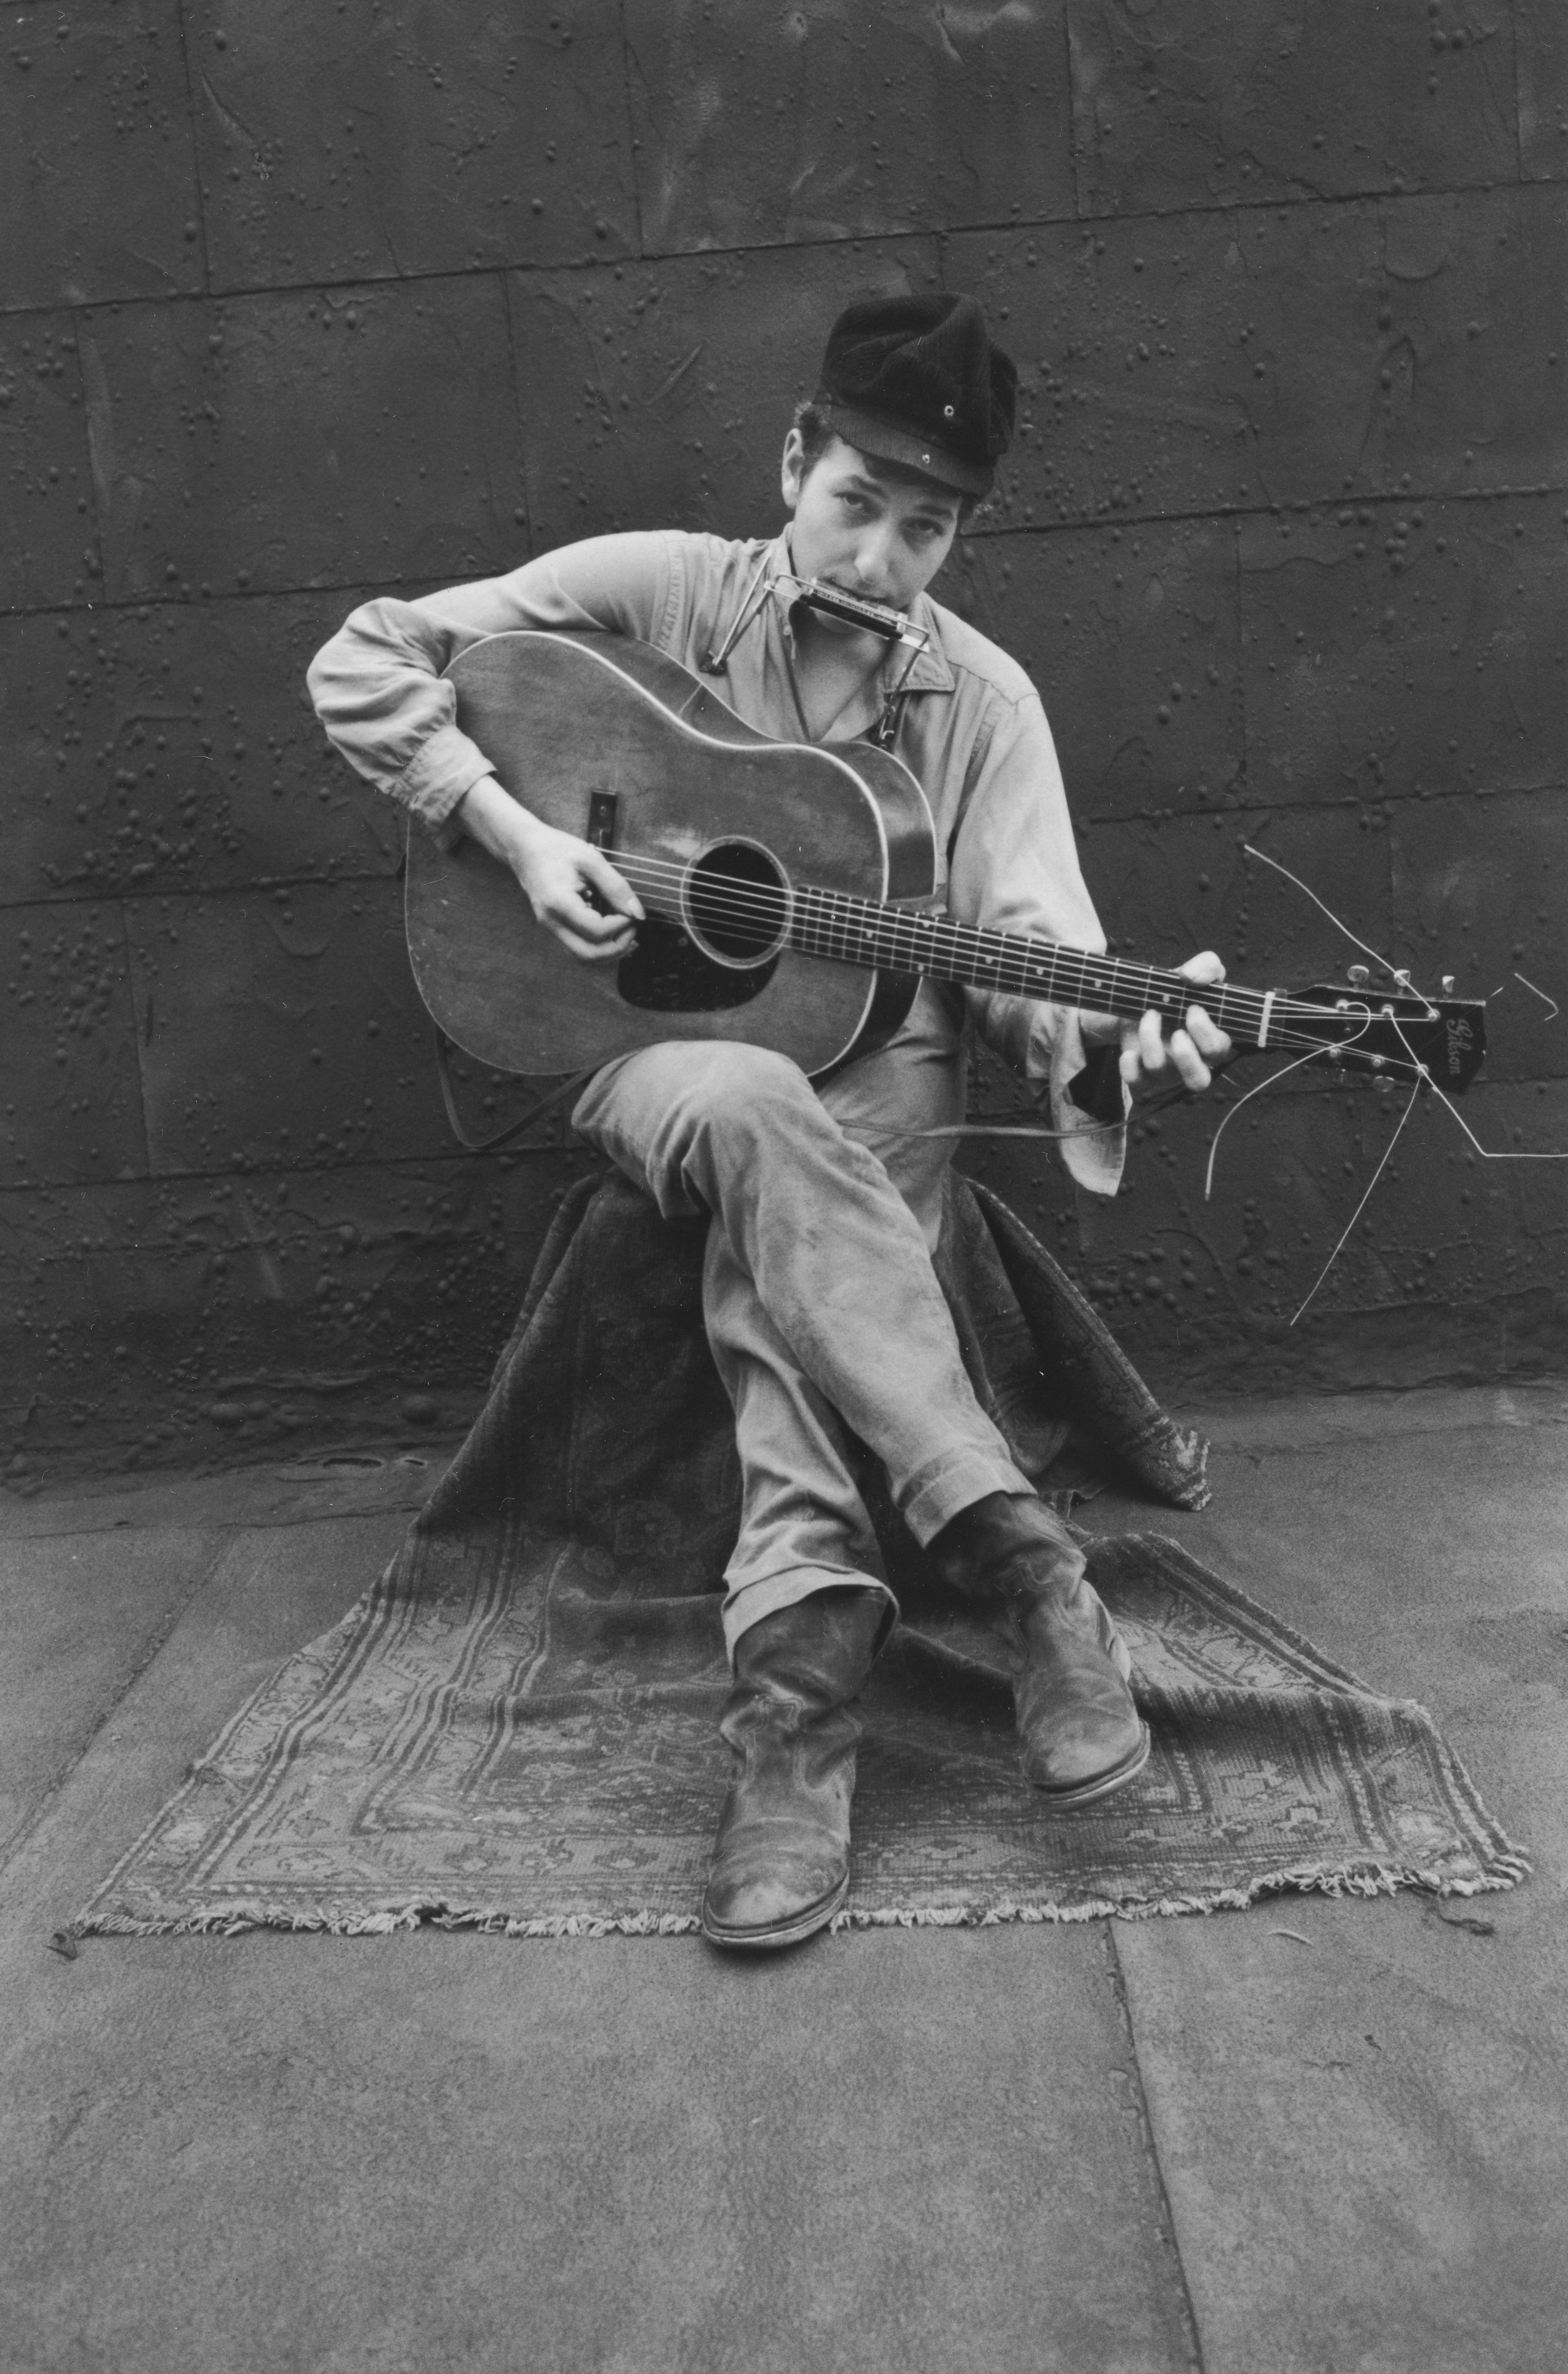 Bob Dylan On My Roof, 1962